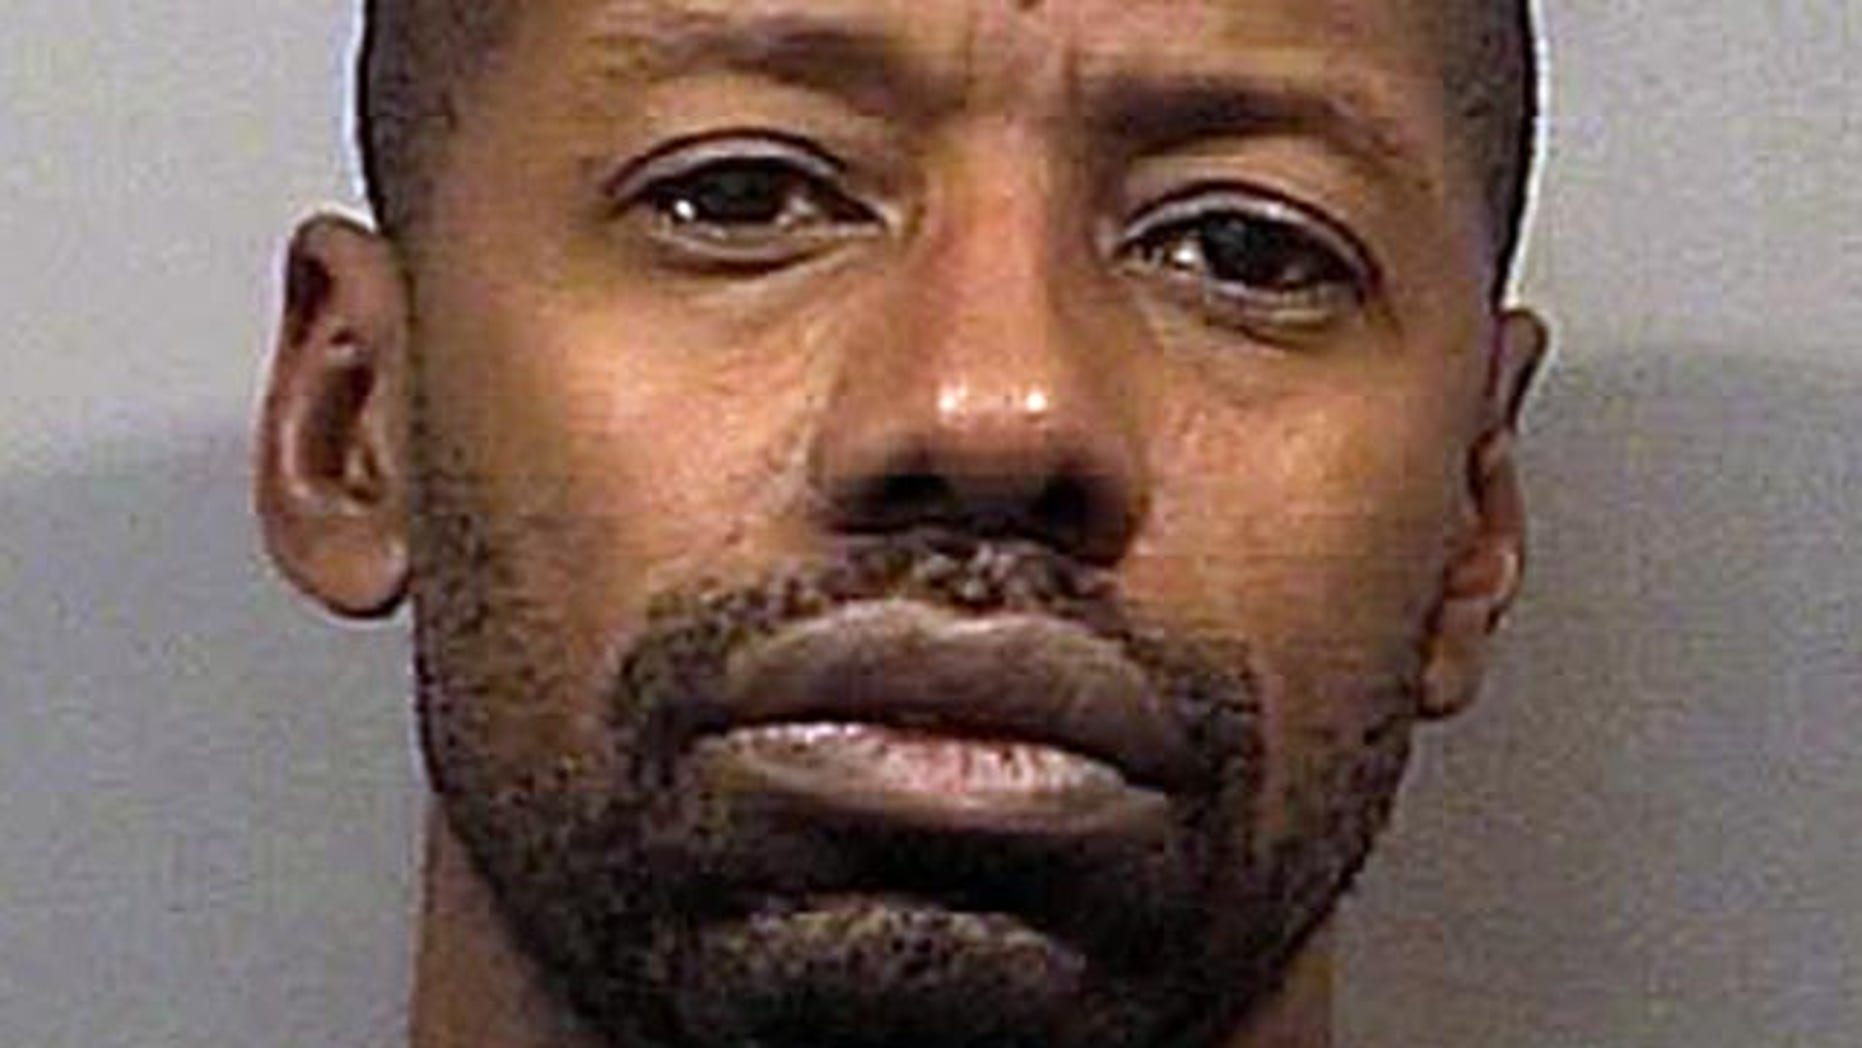 This undated photo provided by the Lake County Sheriff's office shows Darren Vann. (AP Photo/Lake County Sheriff's Office)